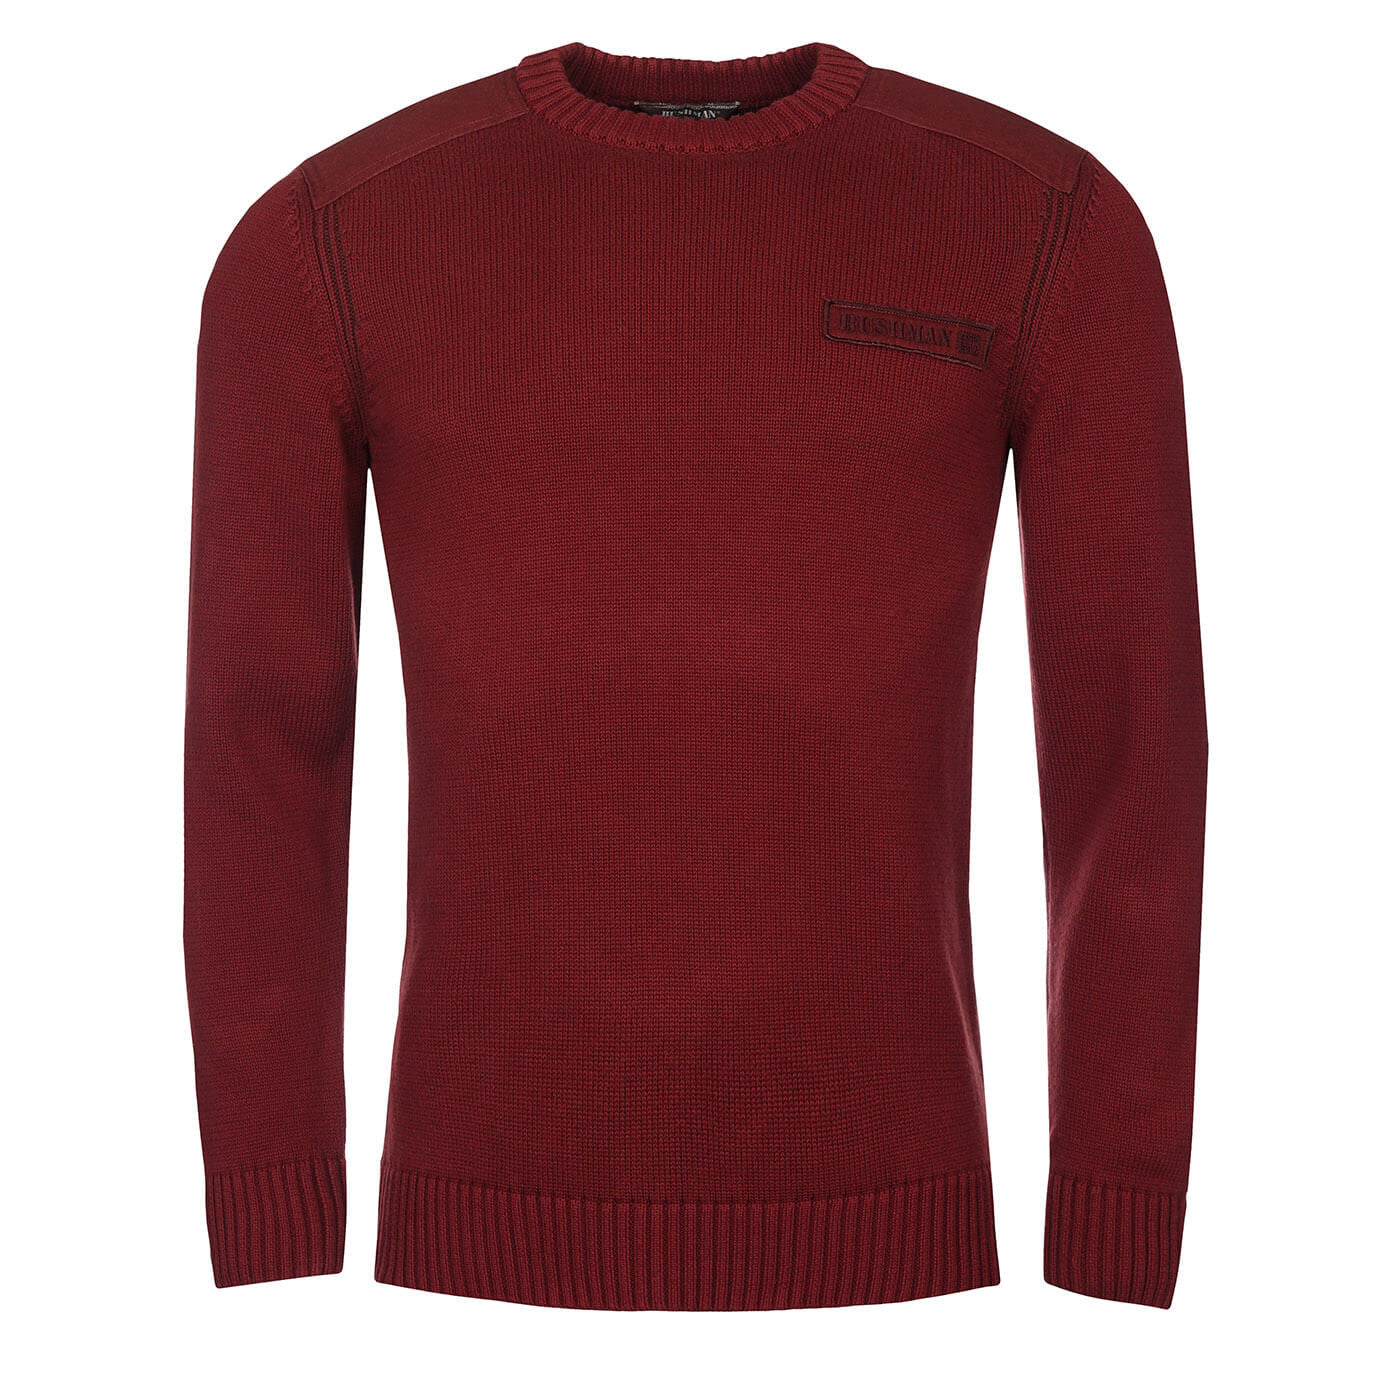 BUSHMANSHOP USAKA MEN'S BROWN RED COTTON MELANGE PULLOVER